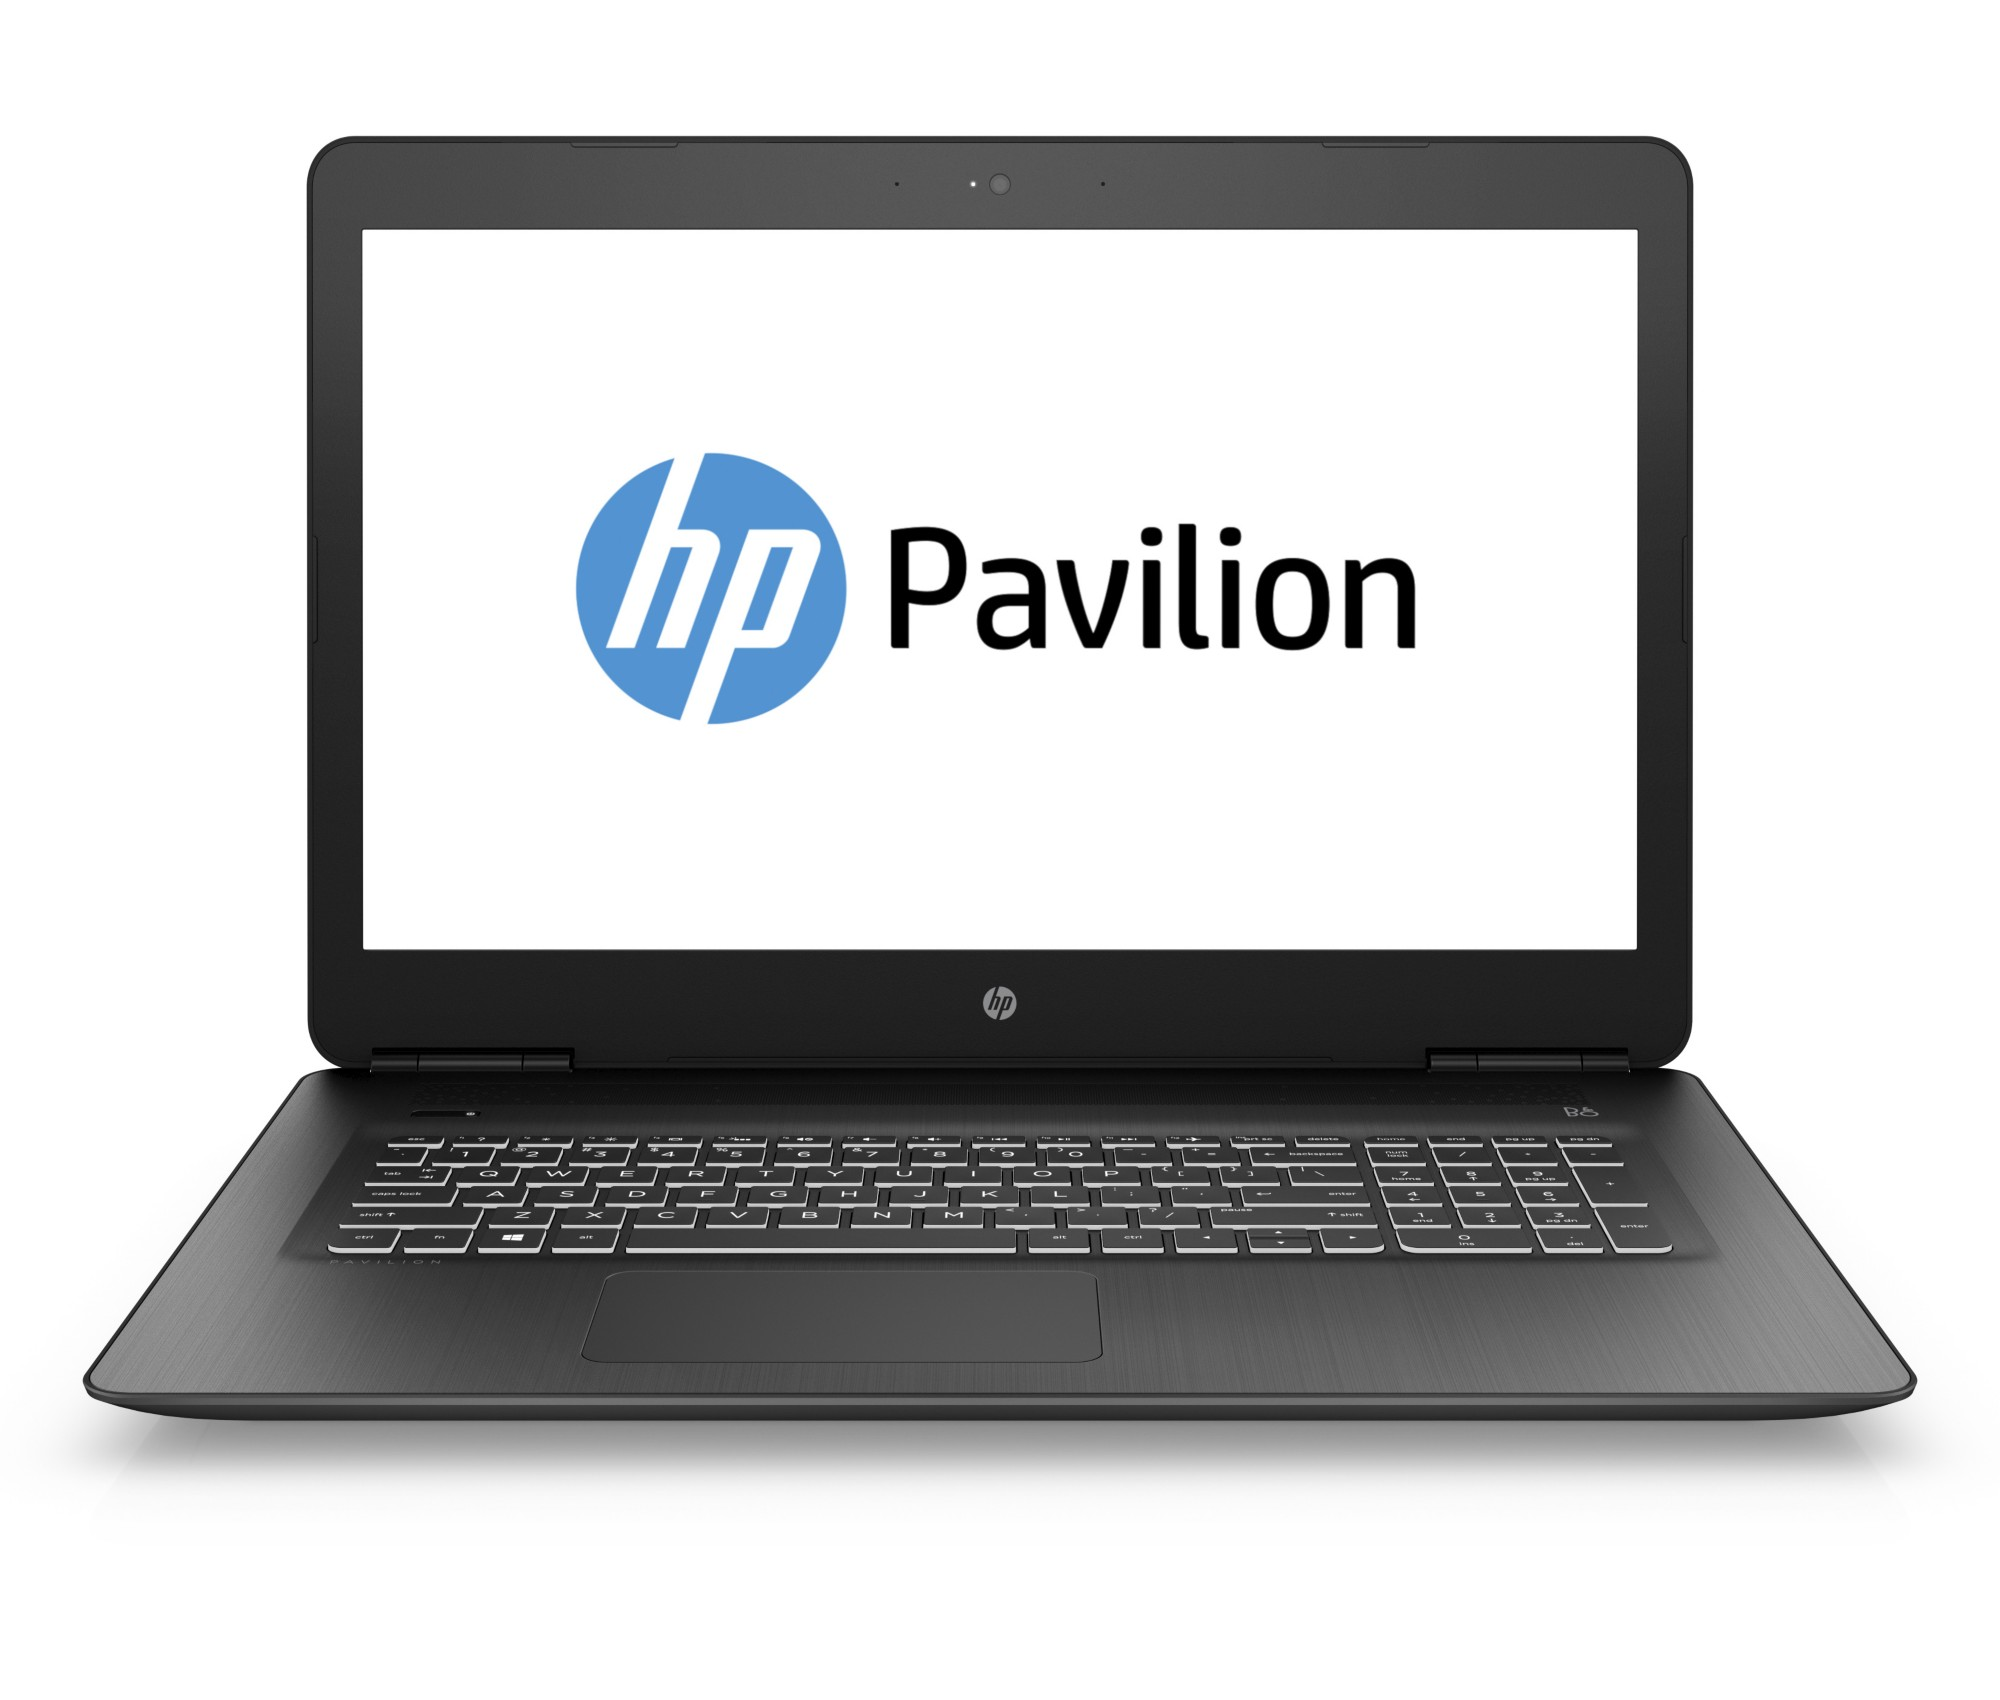 HP PAVILION ZD7377EA REALTEK LAN DRIVER WINDOWS XP